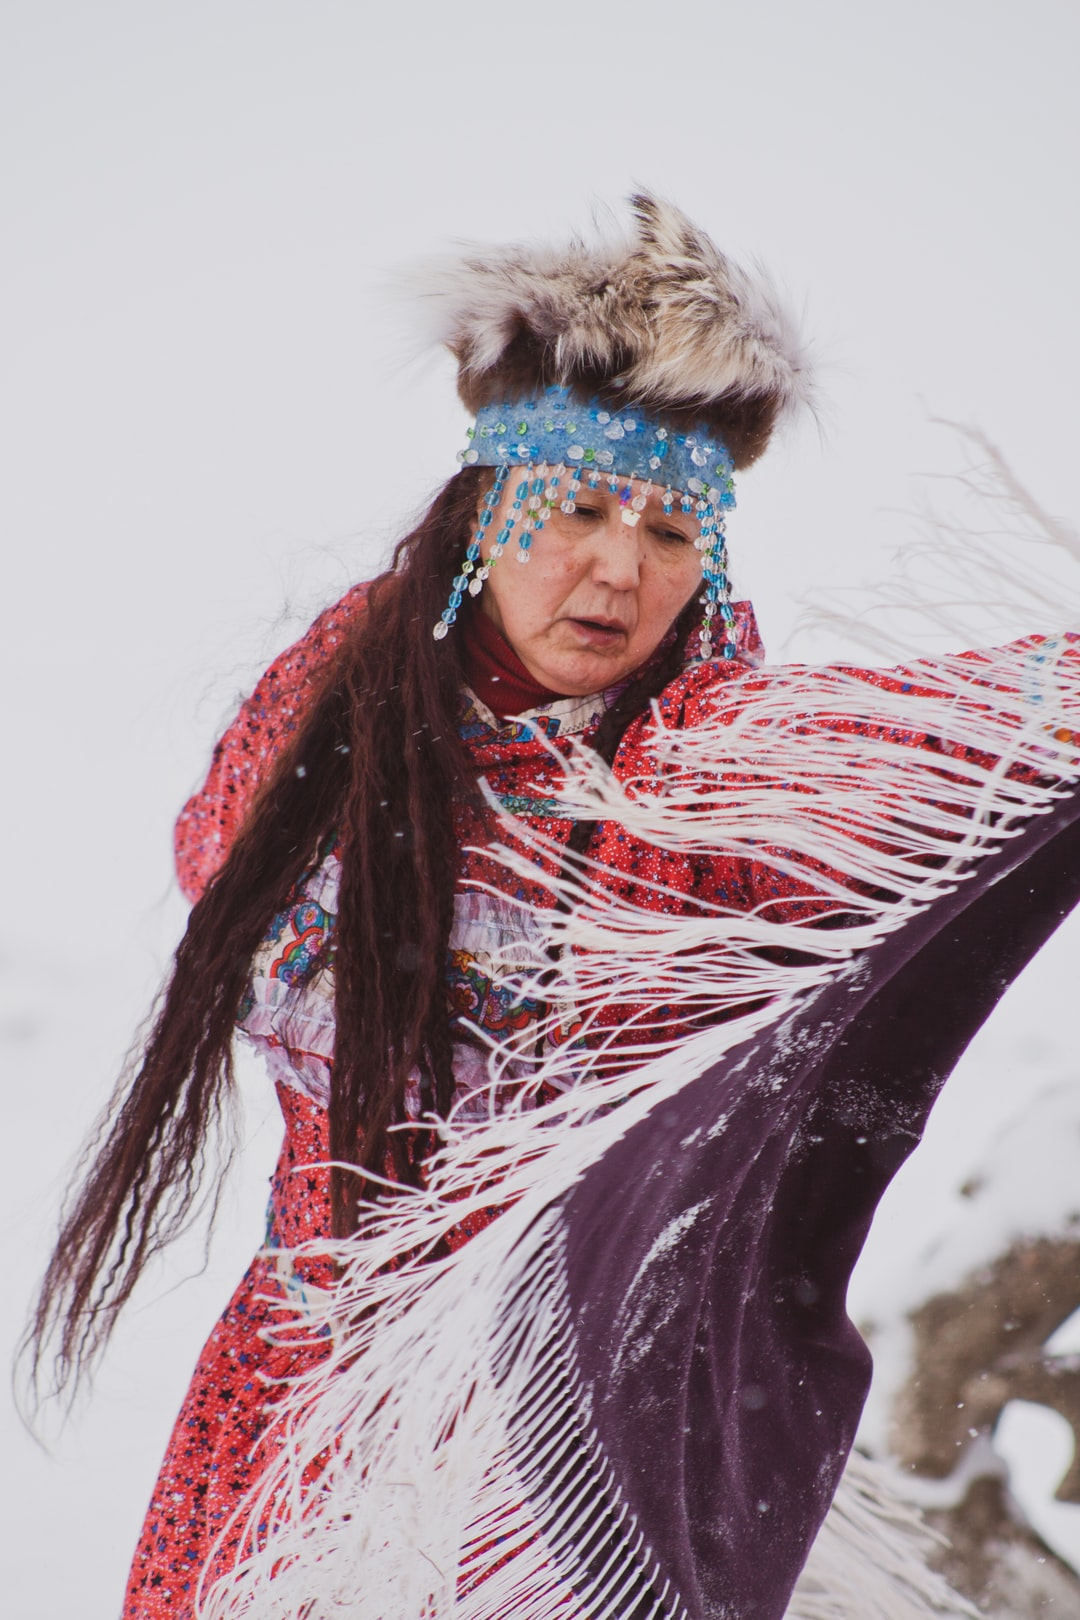 I had the privilege of photographing a traditional Native American dancer while in Barrow, Alaska